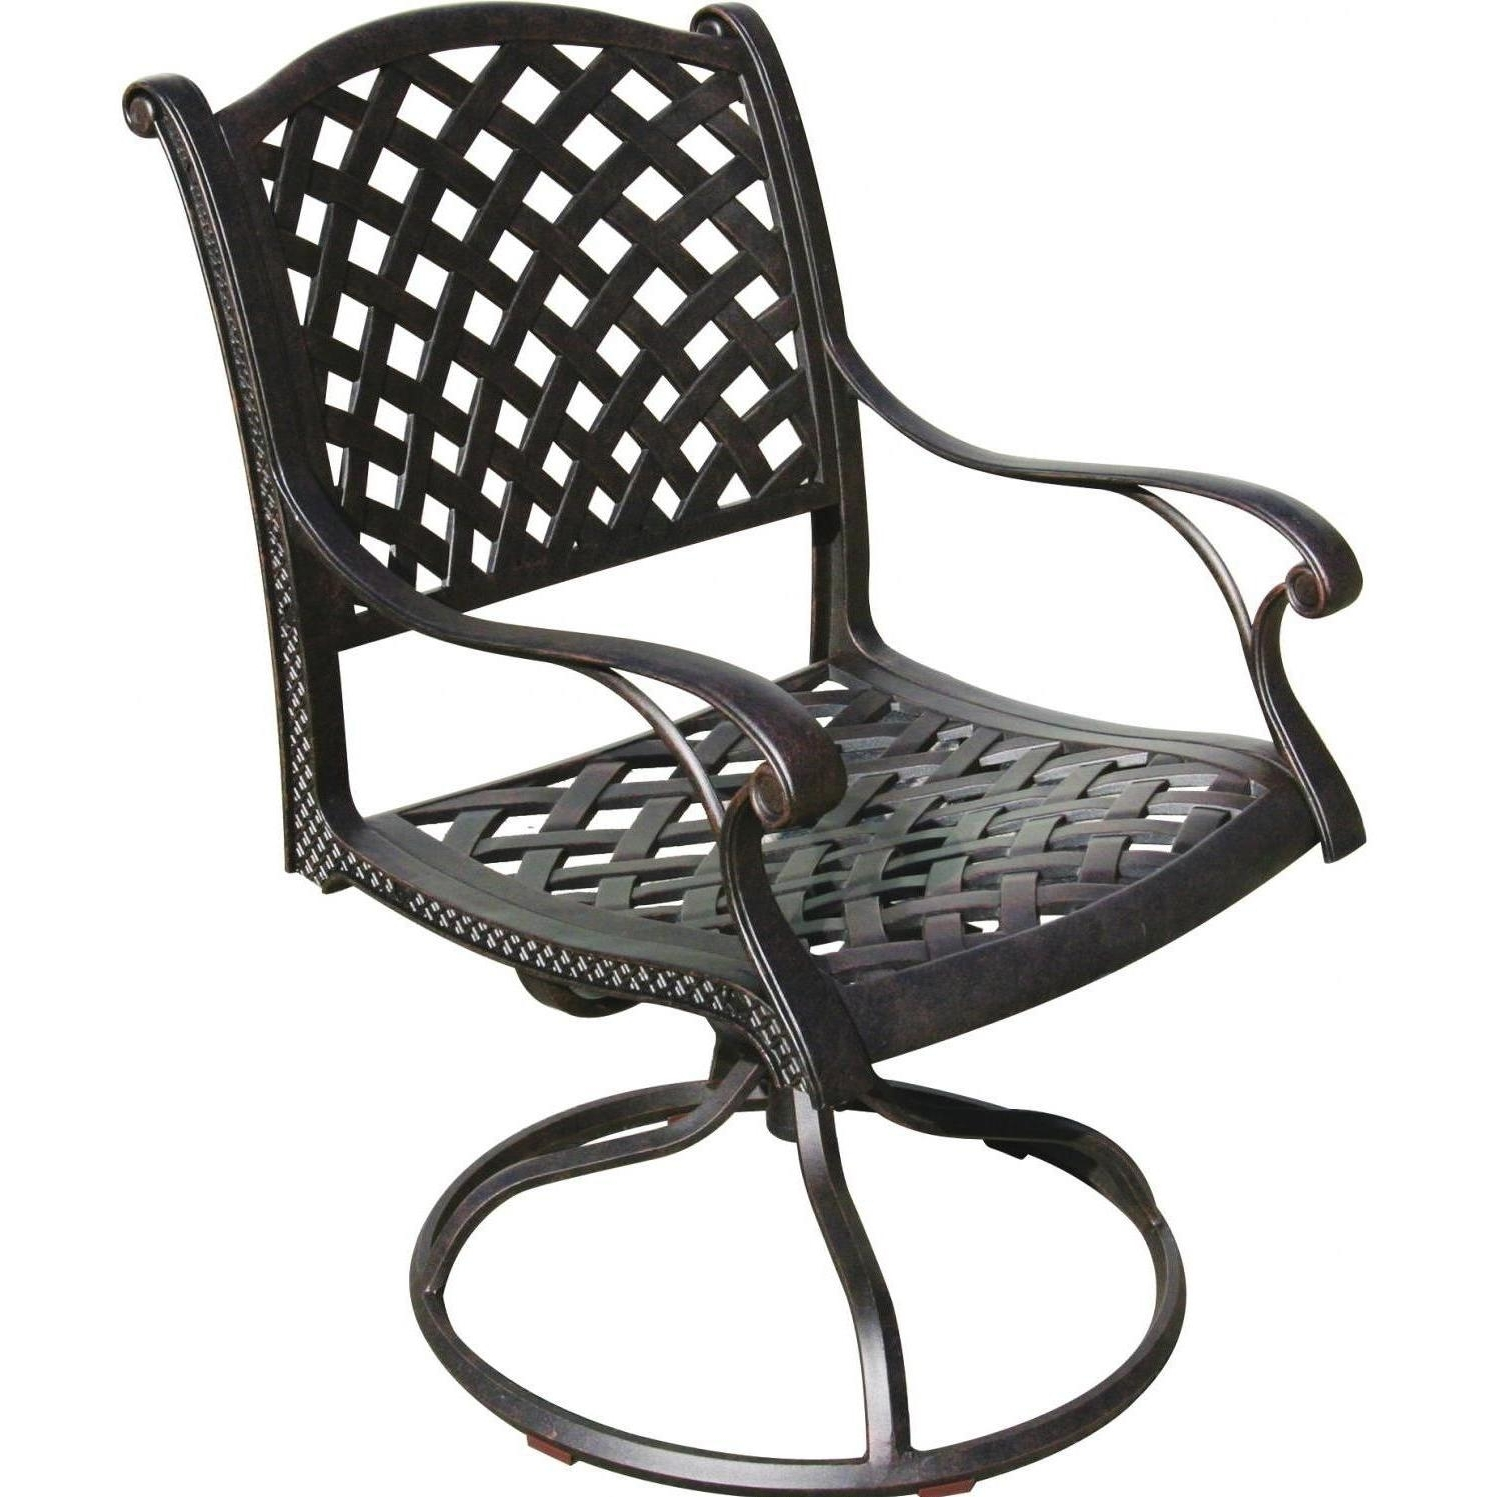 Trendy Darlee Nassau Cast Aluminum Patio Swivel Rocker Dining Chair For Patio Rocking Swivel Chairs (View 3 of 20)